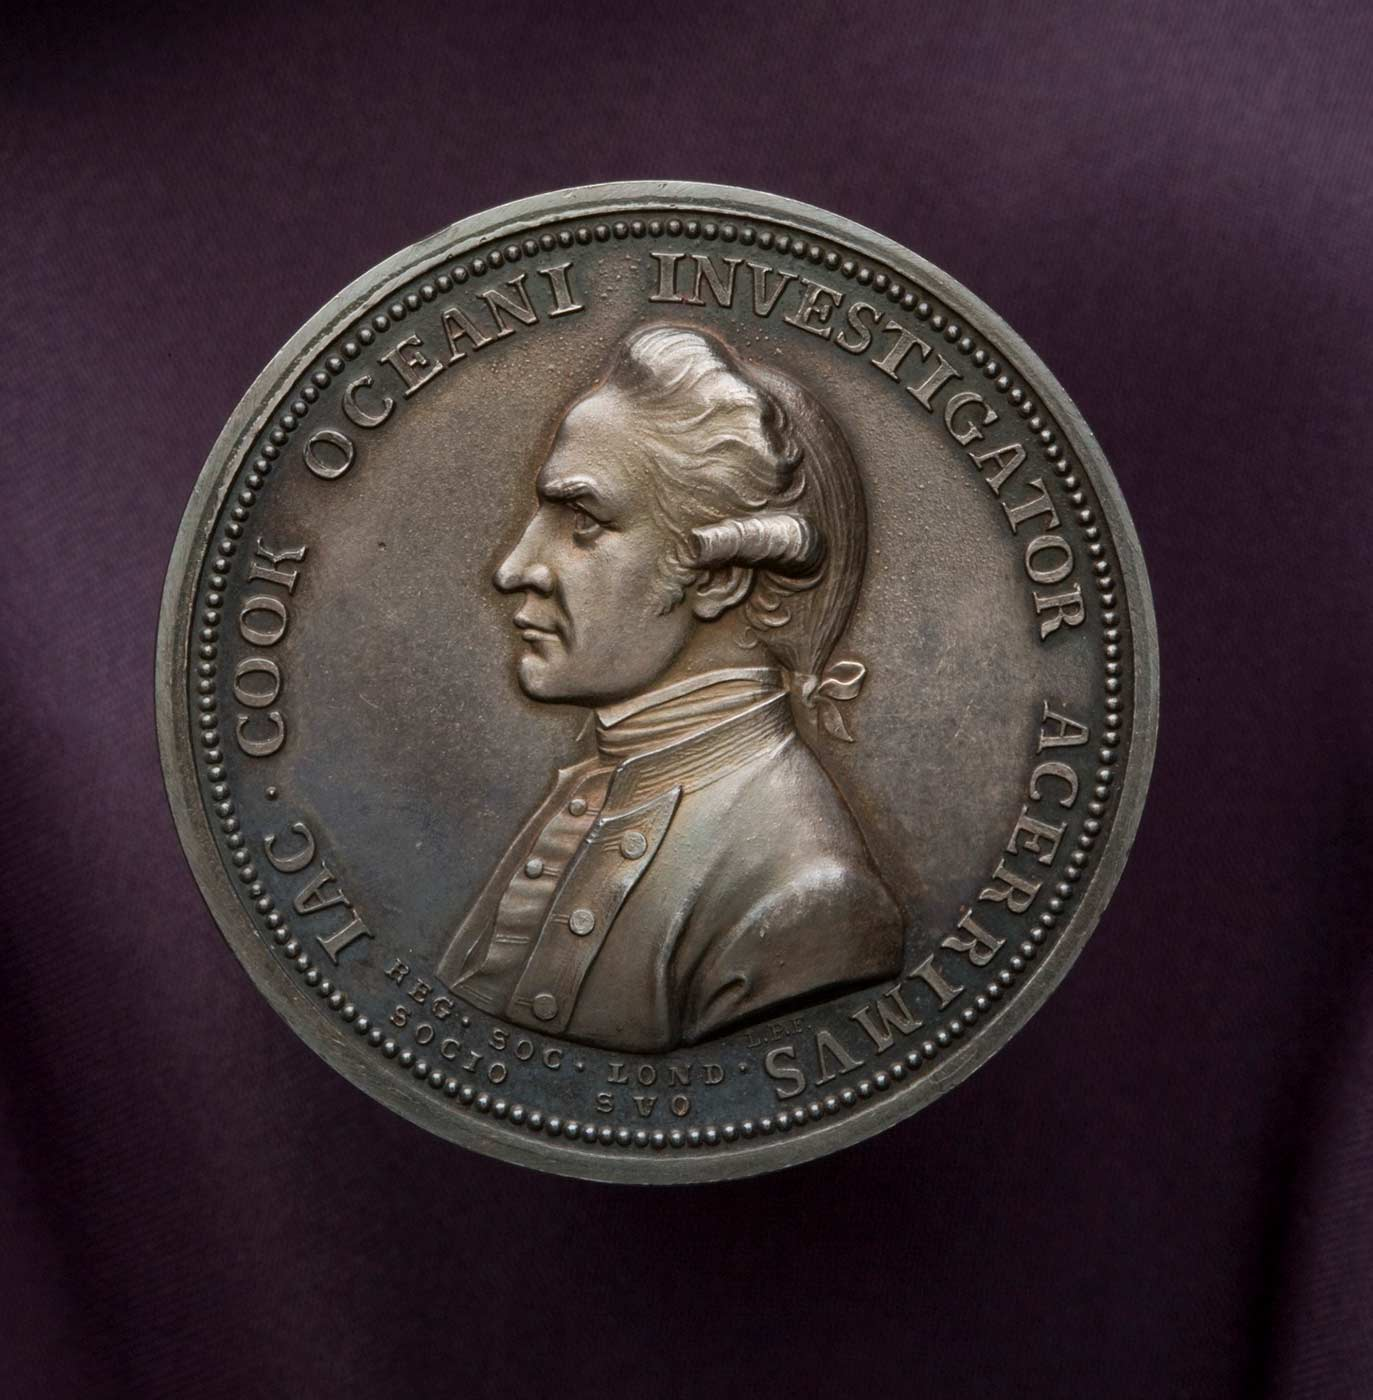 A solid copper medal with a bronzed patina, which features on the obverse a profile portrait bust of Captain James Cook in uniform, and on the reverse Fortune leaning upon a column with a spear in the crook of her arm, holding a rudder on a globe. Encircling the portrait of Cook is the Latin text